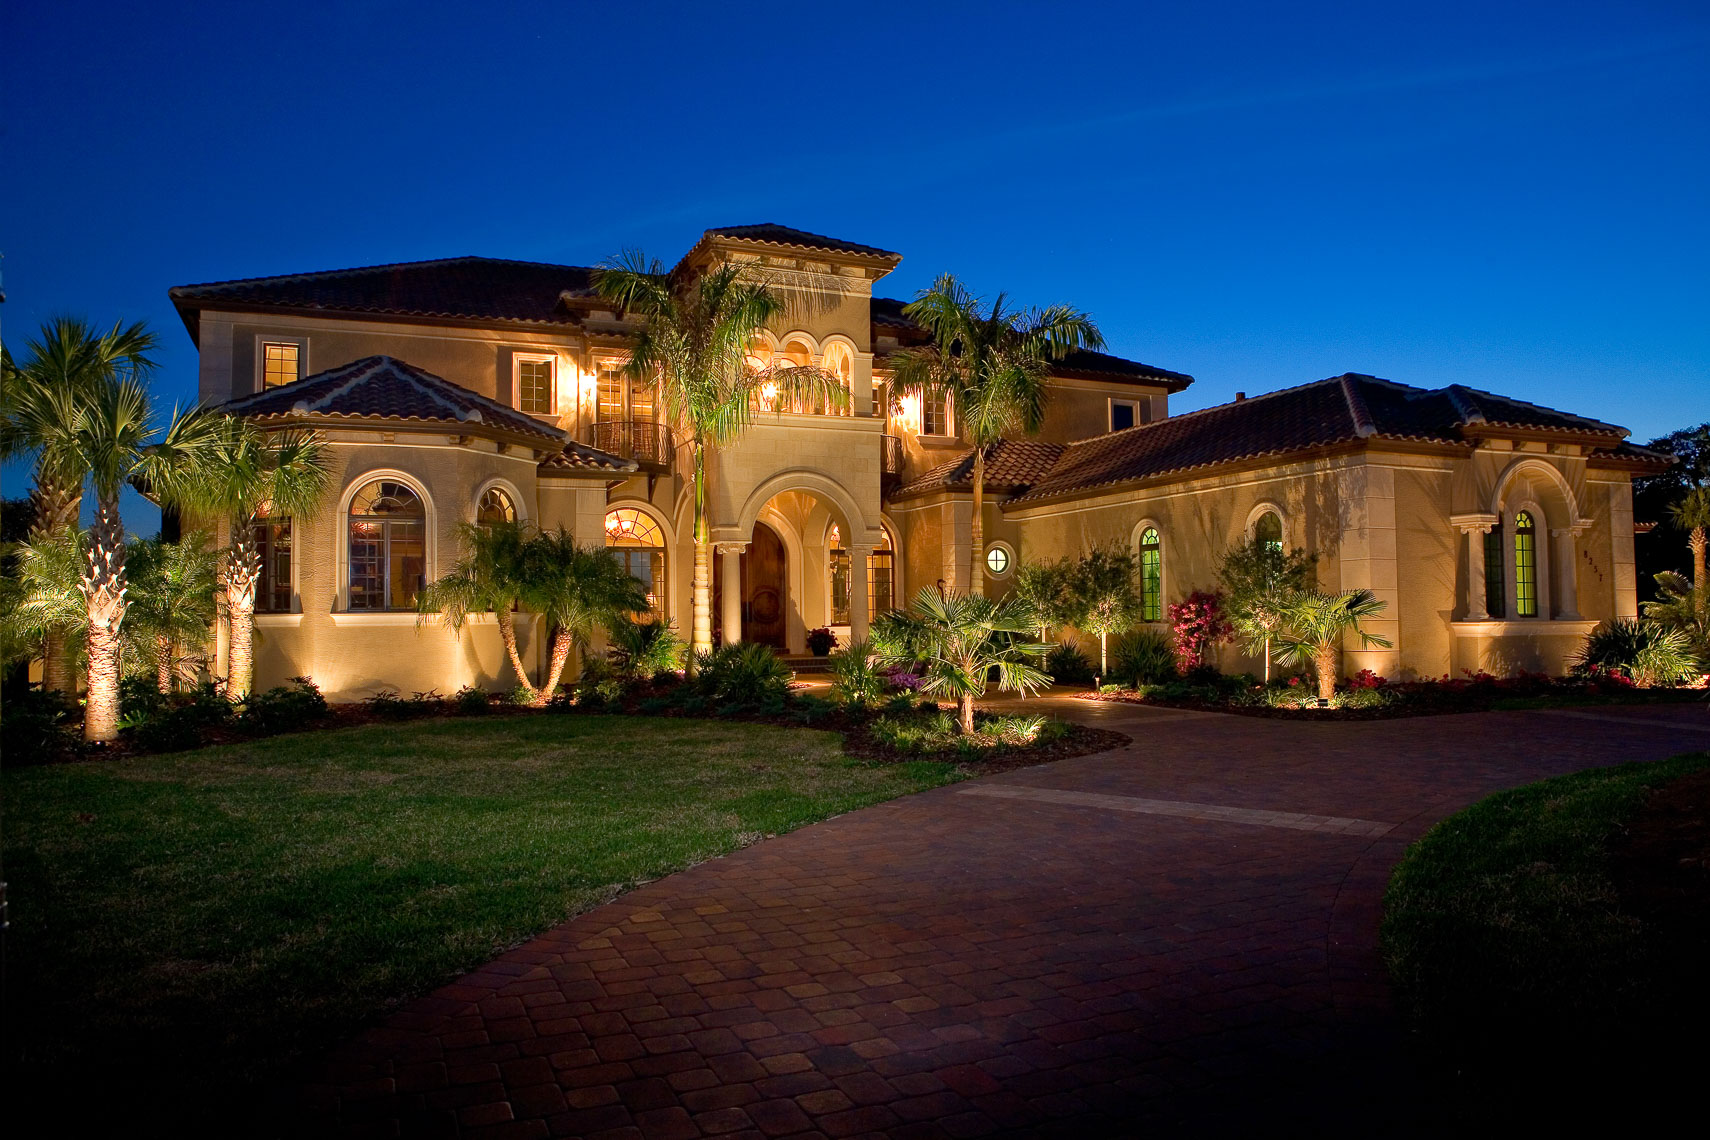 Luxury Mediterranean Home - Mark Borosch Photography - Lakewood Ranch, FL